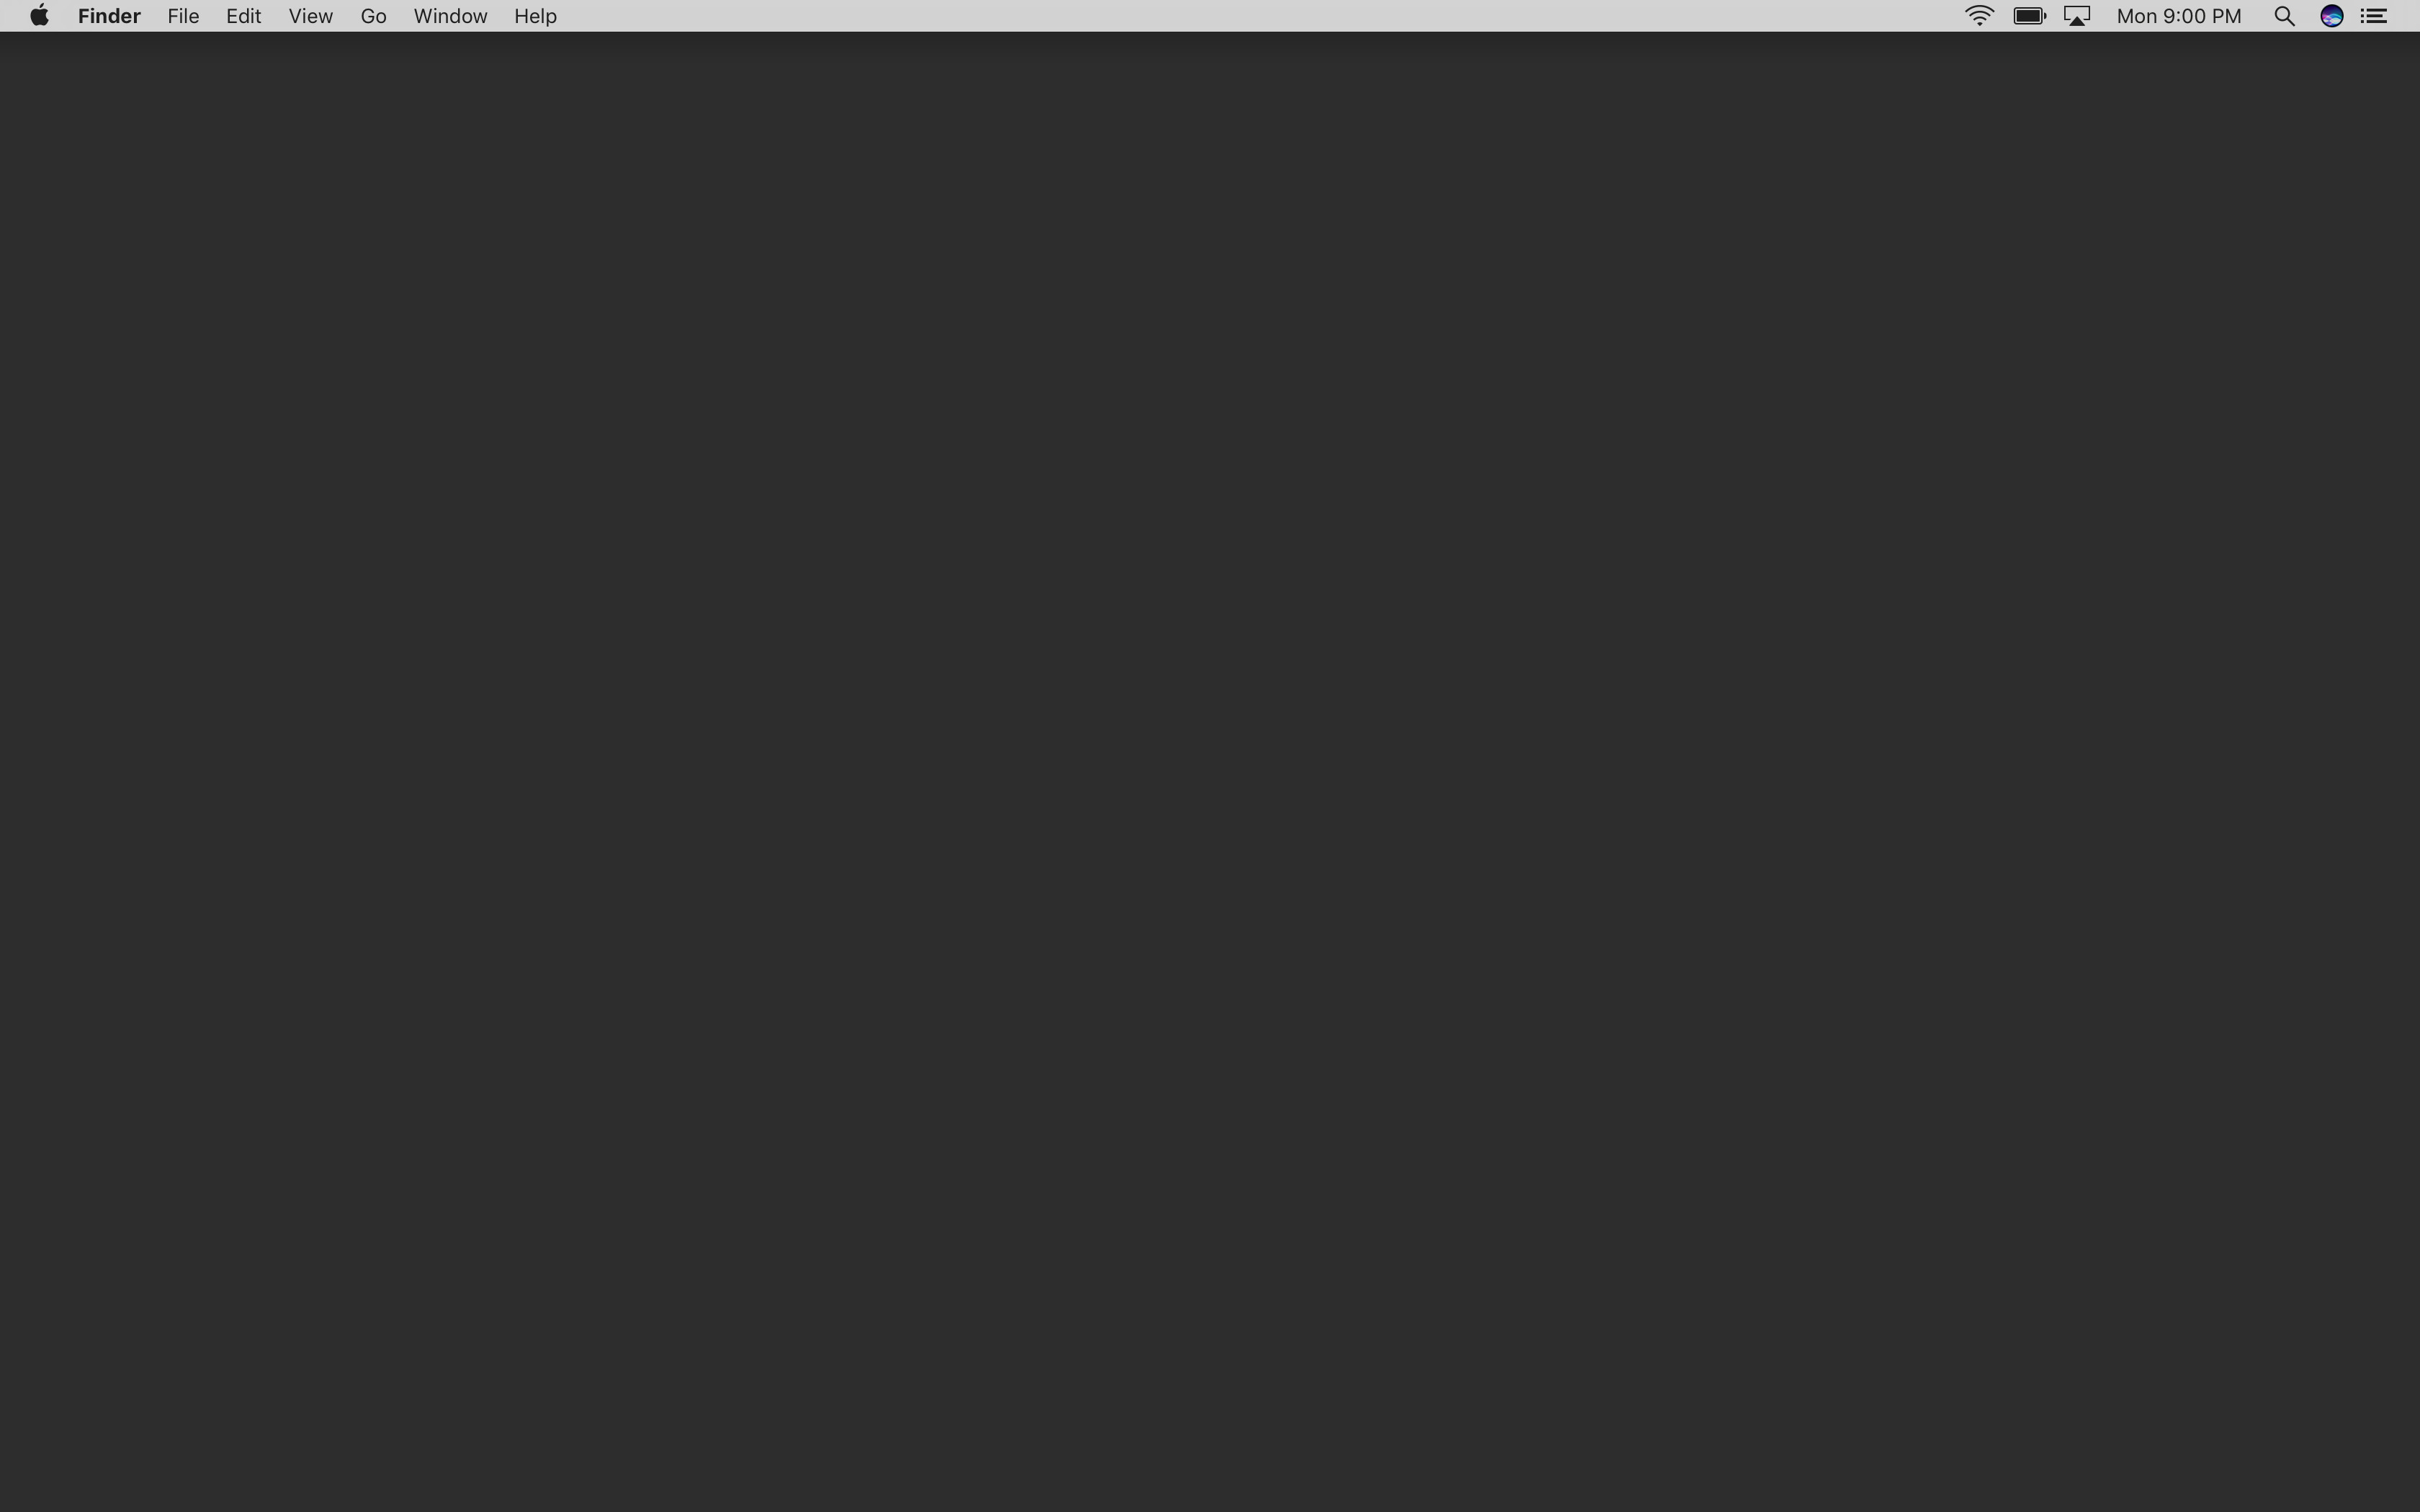 This is my macOS desktop, with a solid grey wallpaper and a hidden dock.